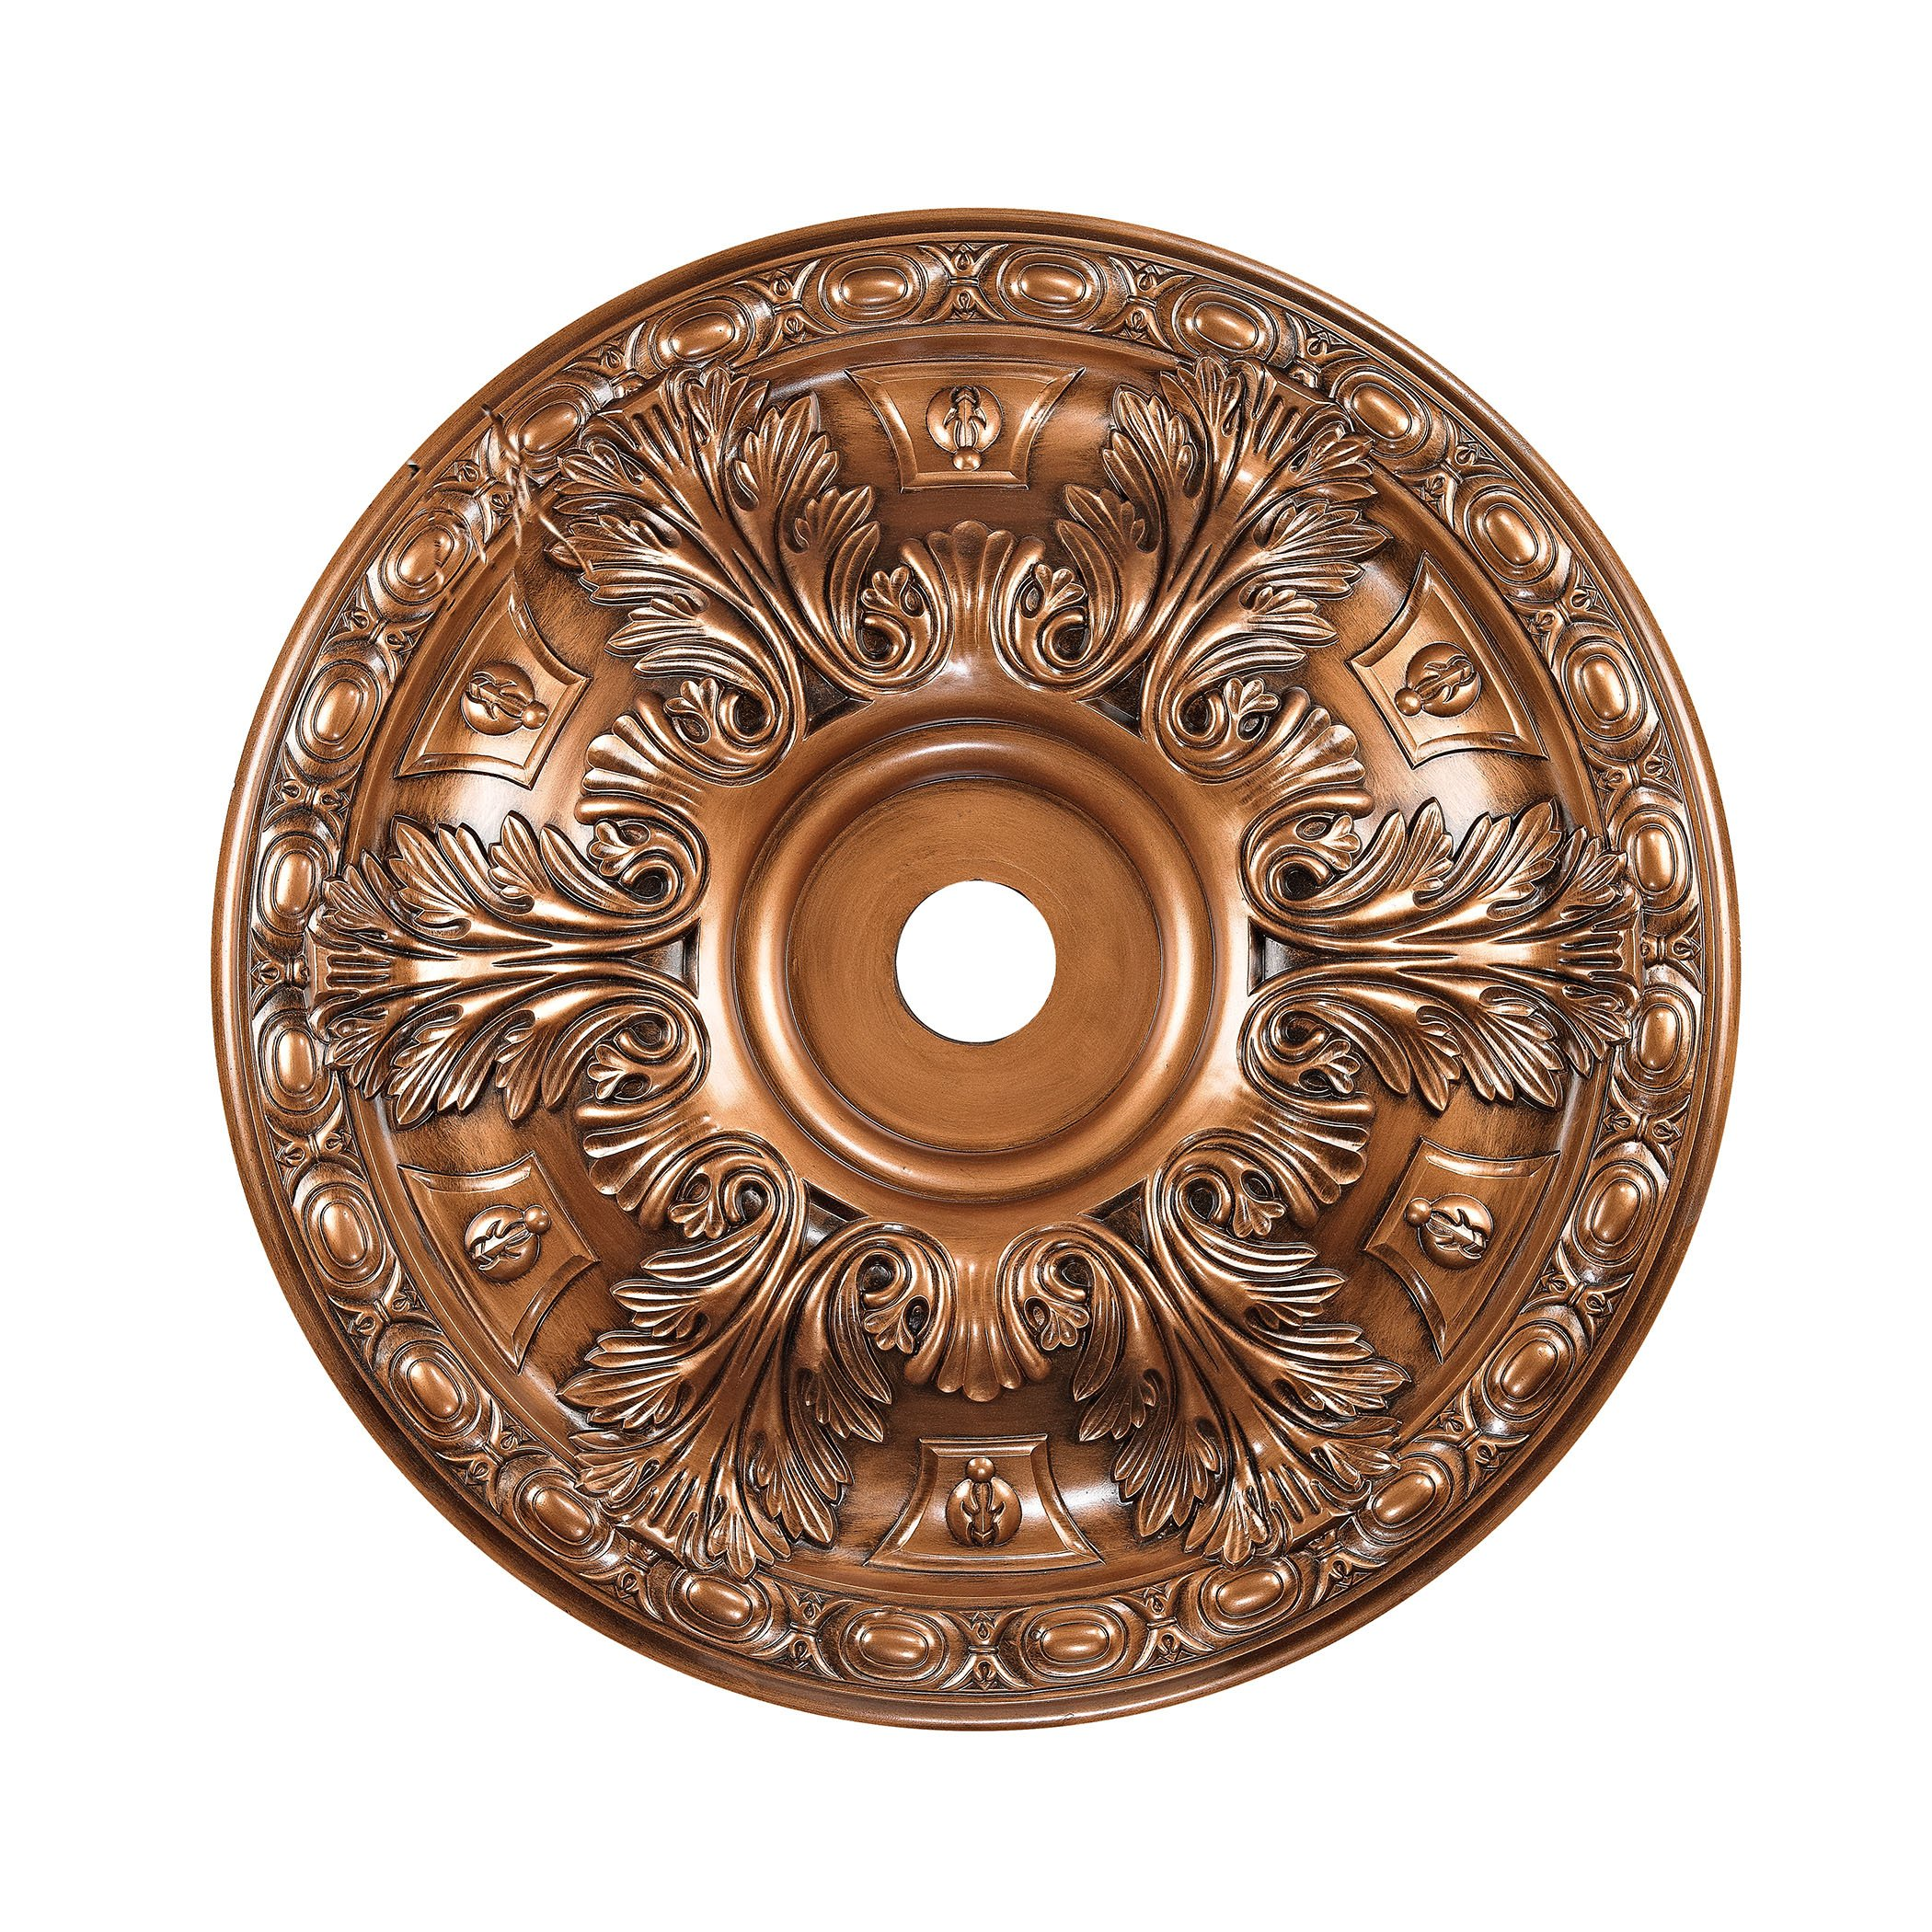 Elk Lighting Pennington 36'' Medallion Ceiling Canopy in Antique Bronze